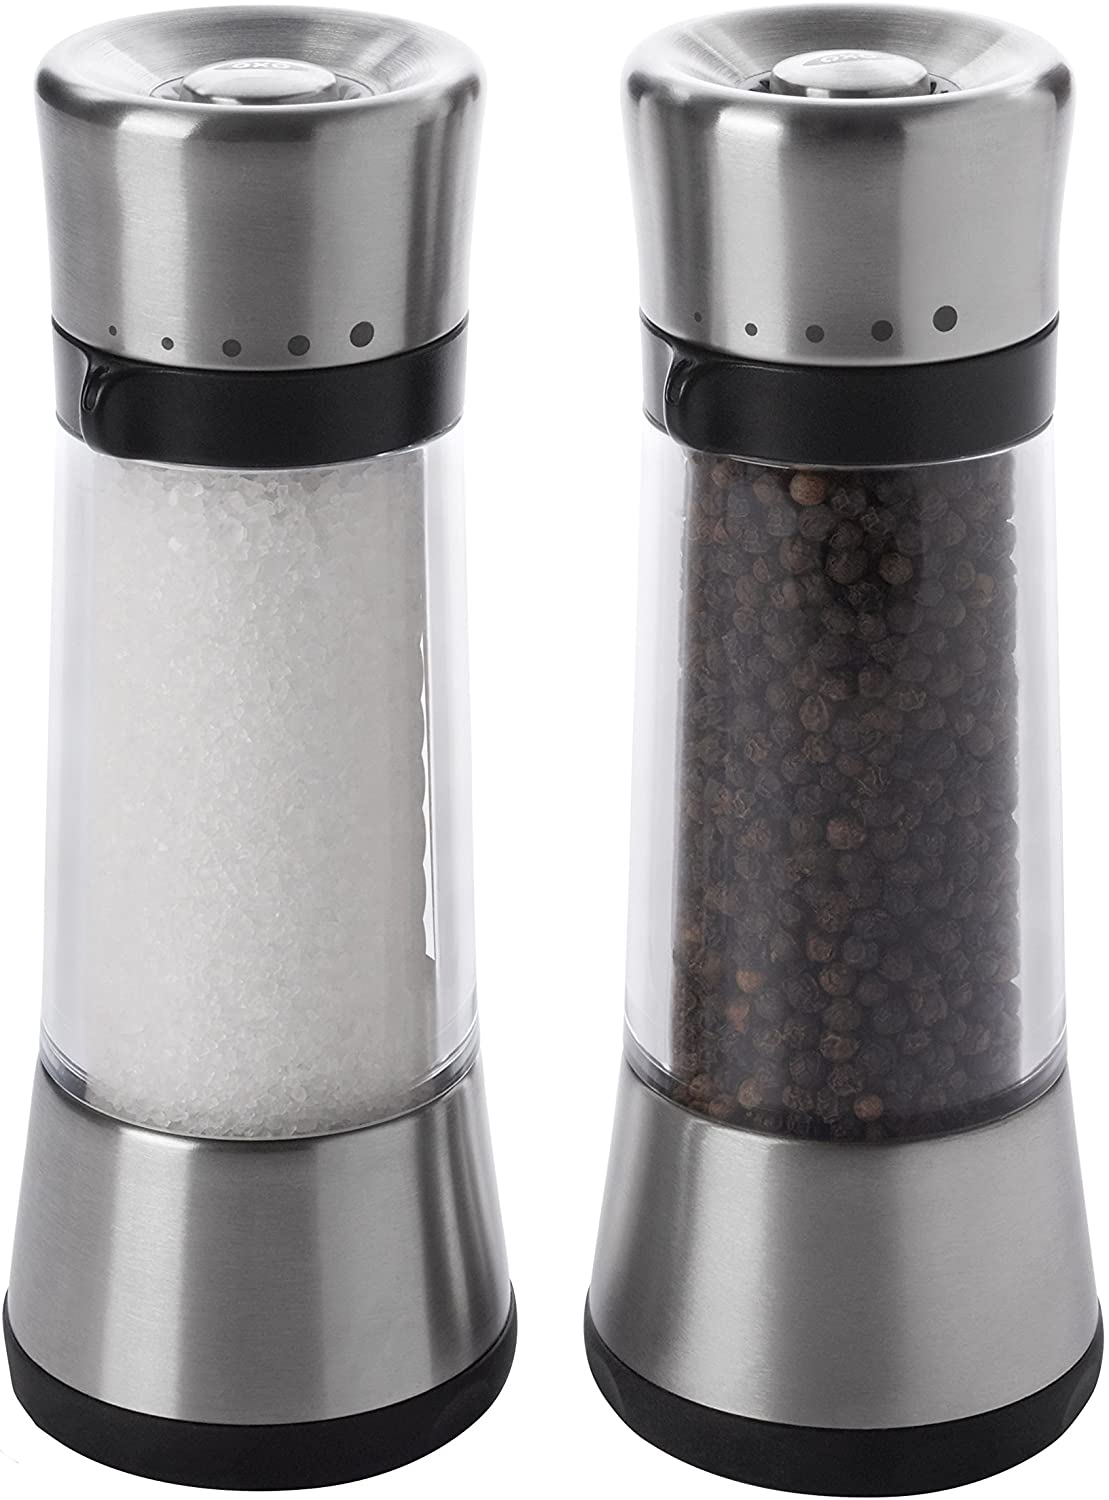 OXO Good Grips Salt and Pepper Mill Set with Adjustable Grind Size